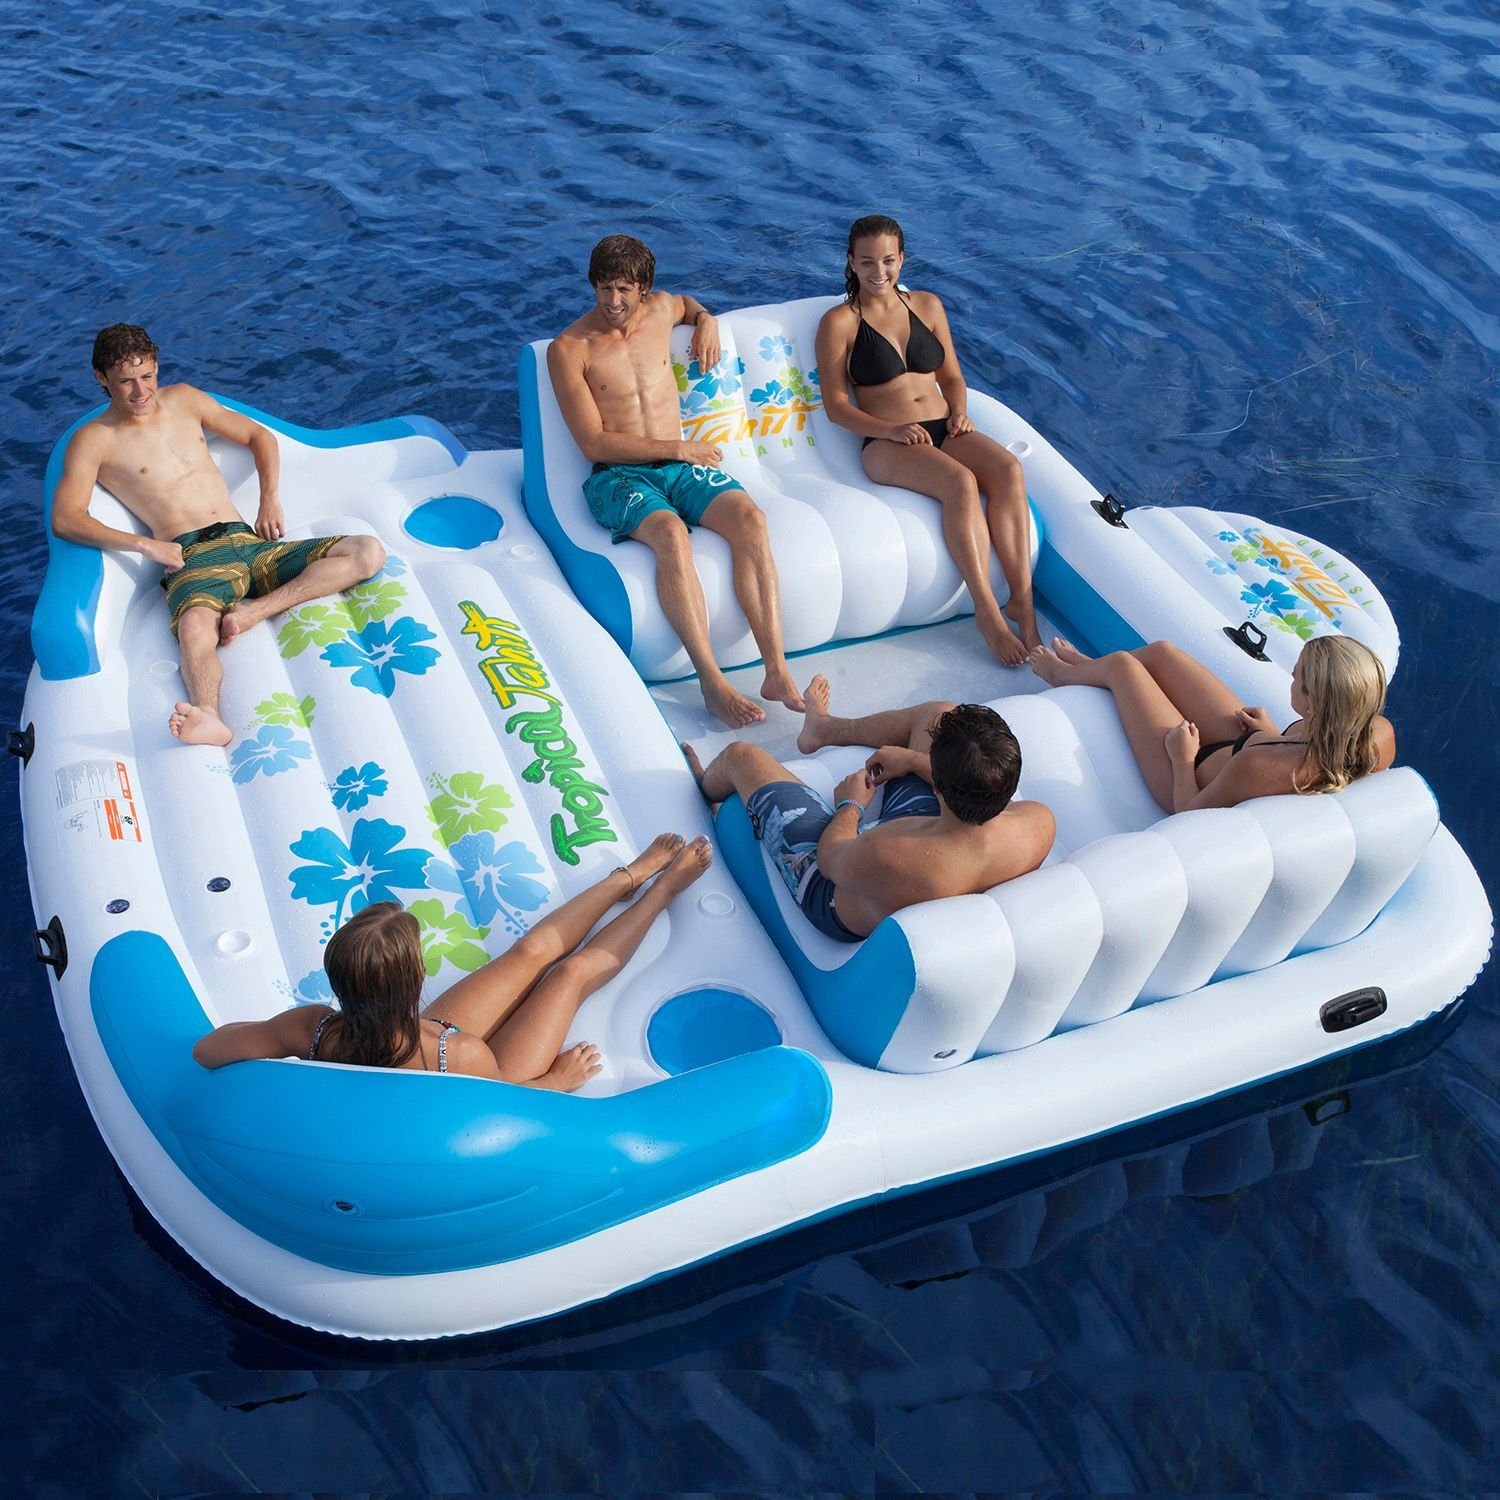 Tropical Tahiti Floating Island 6 Person Sam s Club